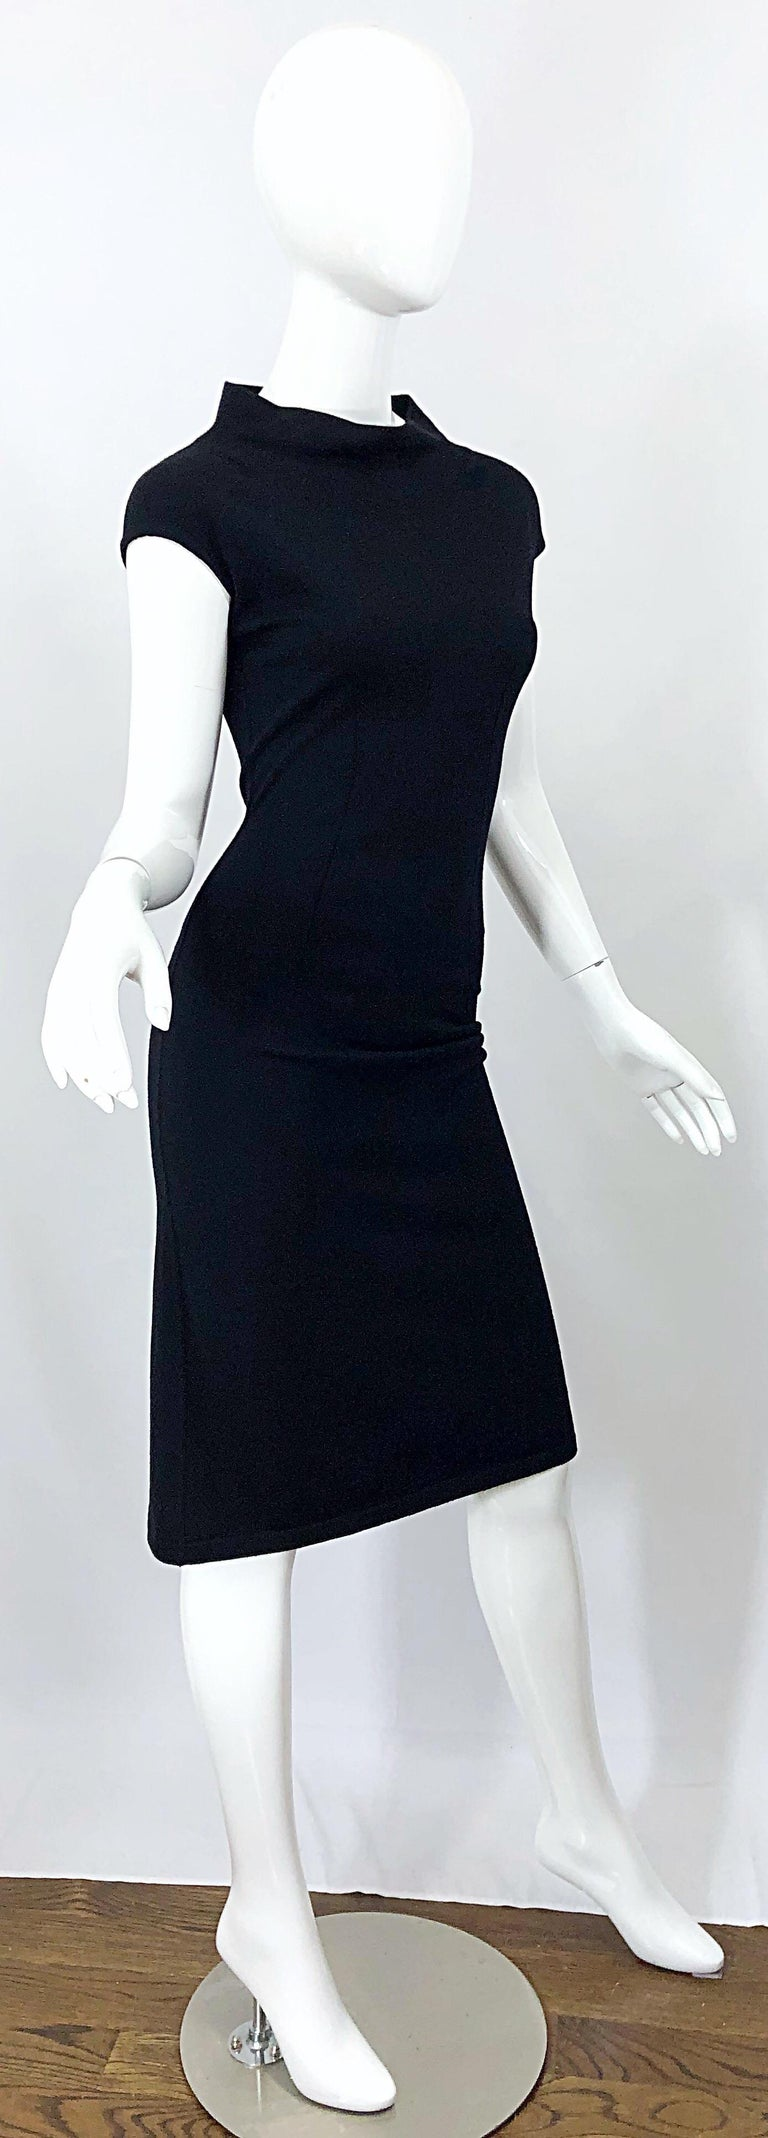 Vintage Azzedine Alaia 1980s Black Lightweight Wool Cap Sleeve Bodycon 80s Dress For Sale 3